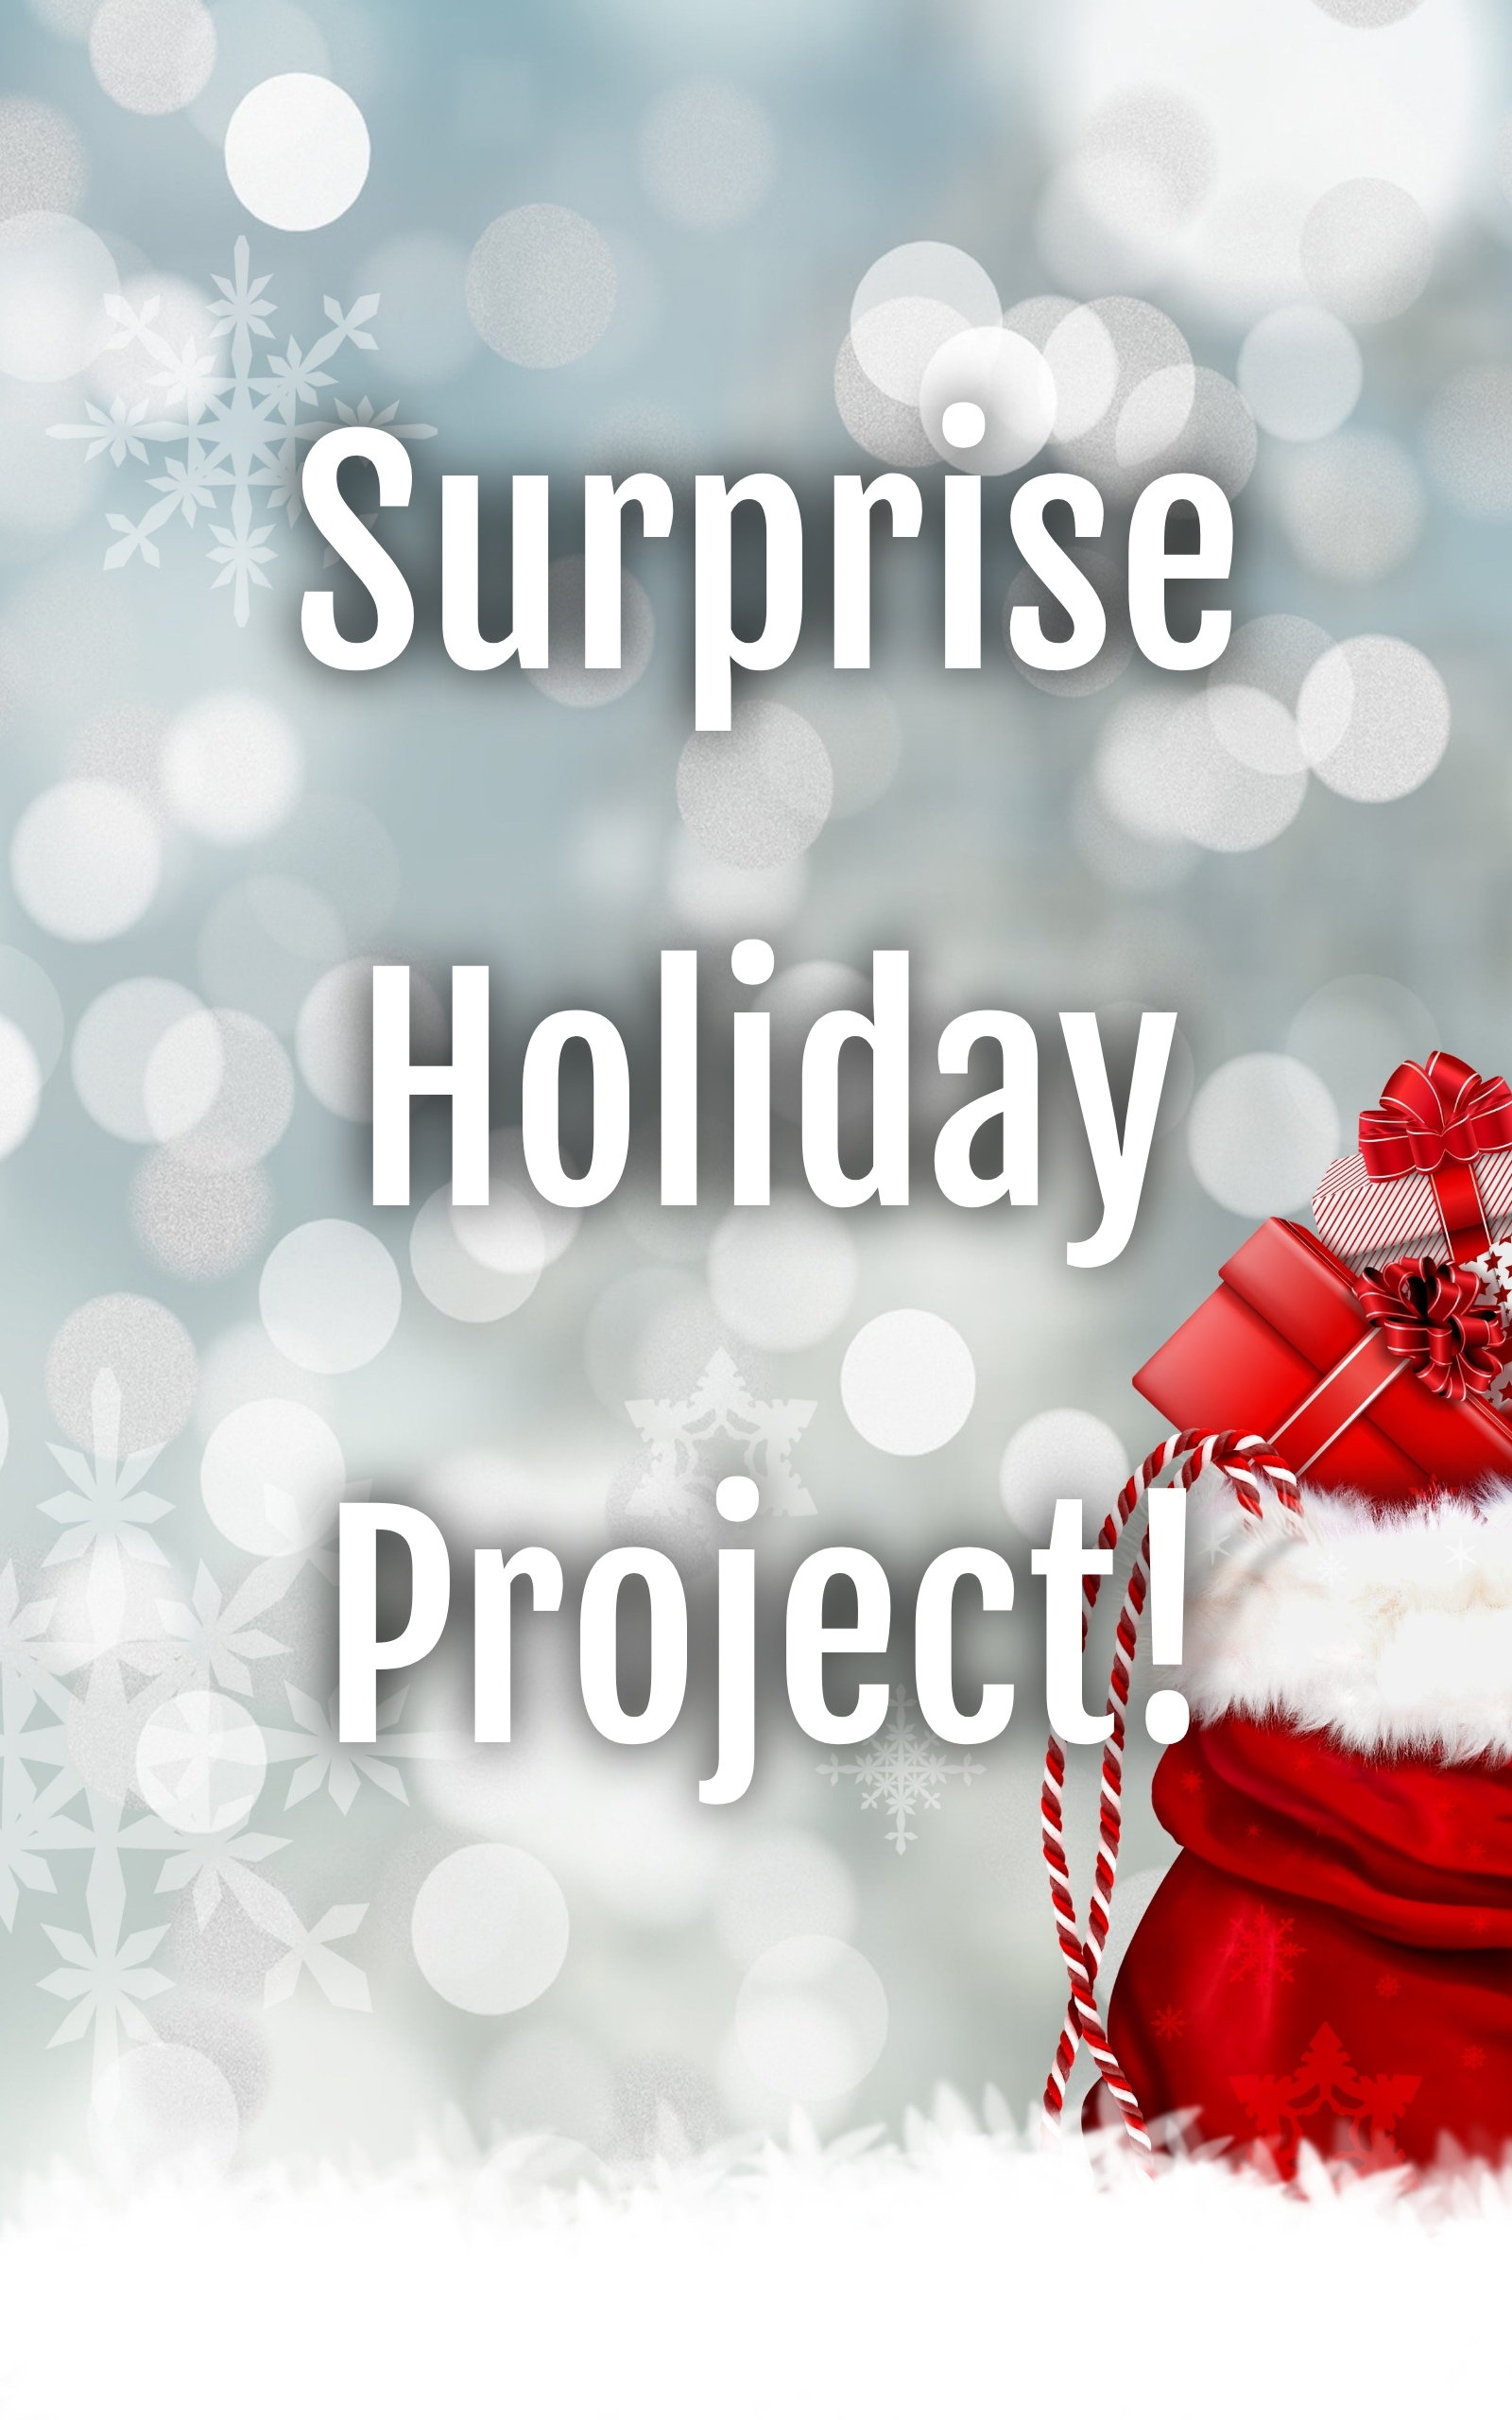 Surprise Holiday Project Tease